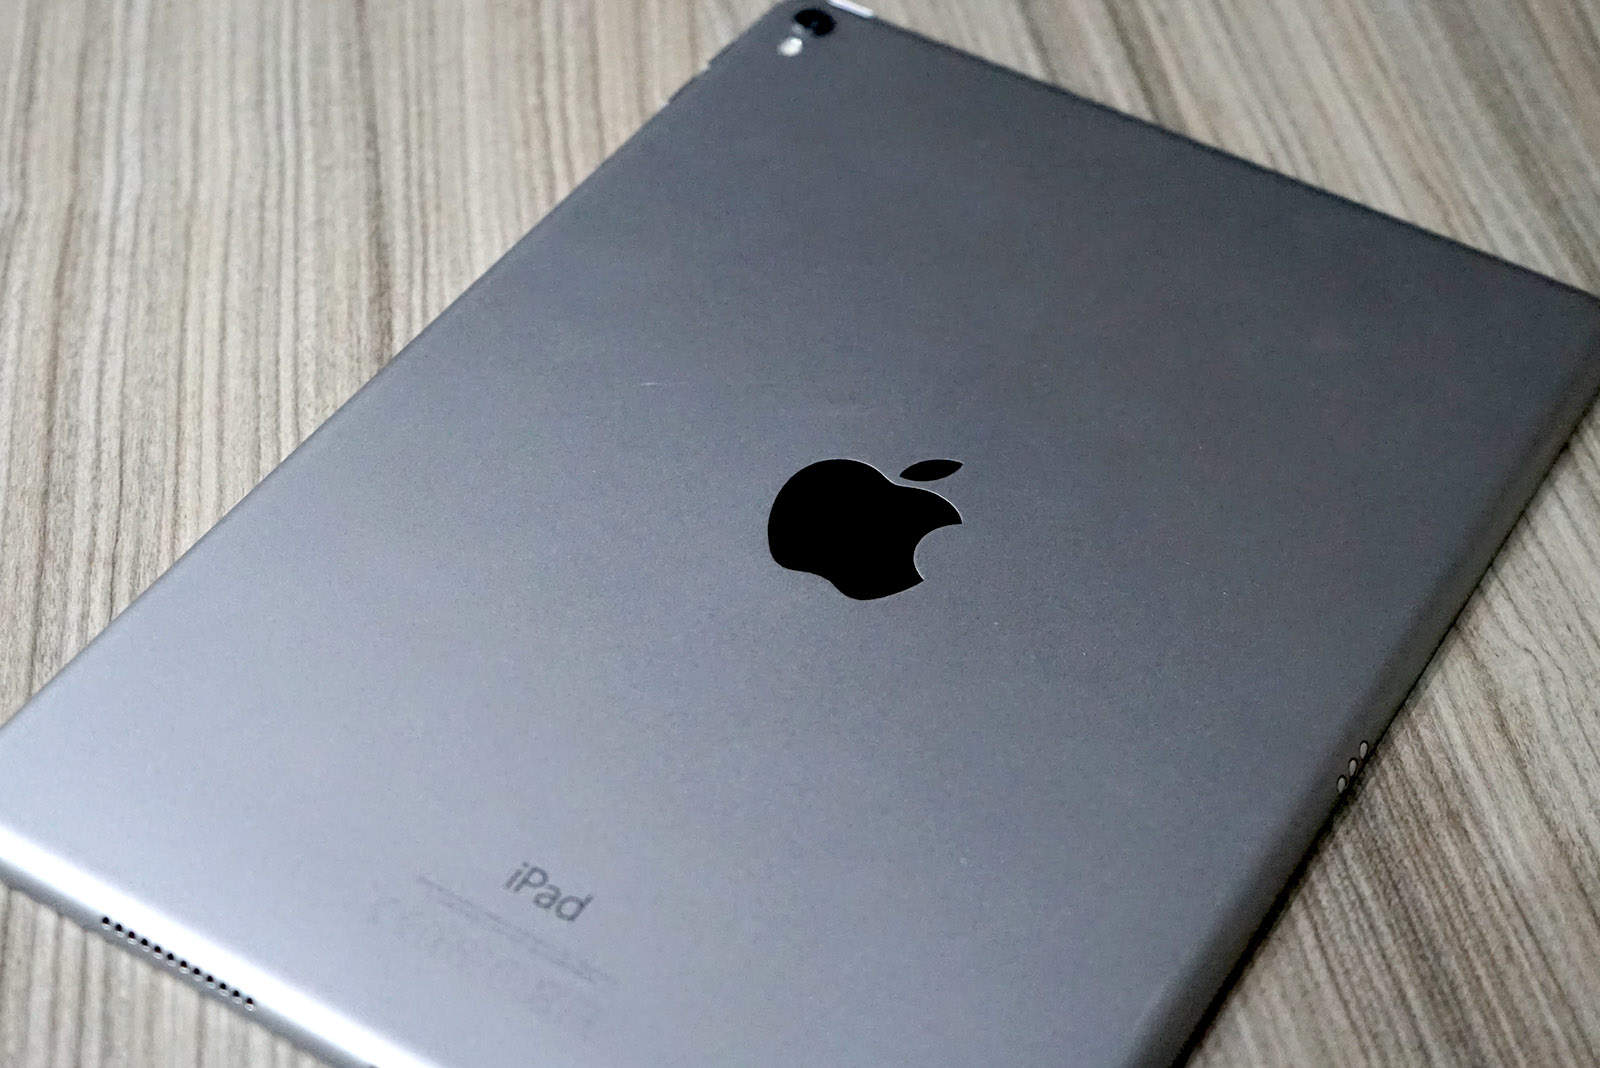 The iPad Pro is about to get even bigger.